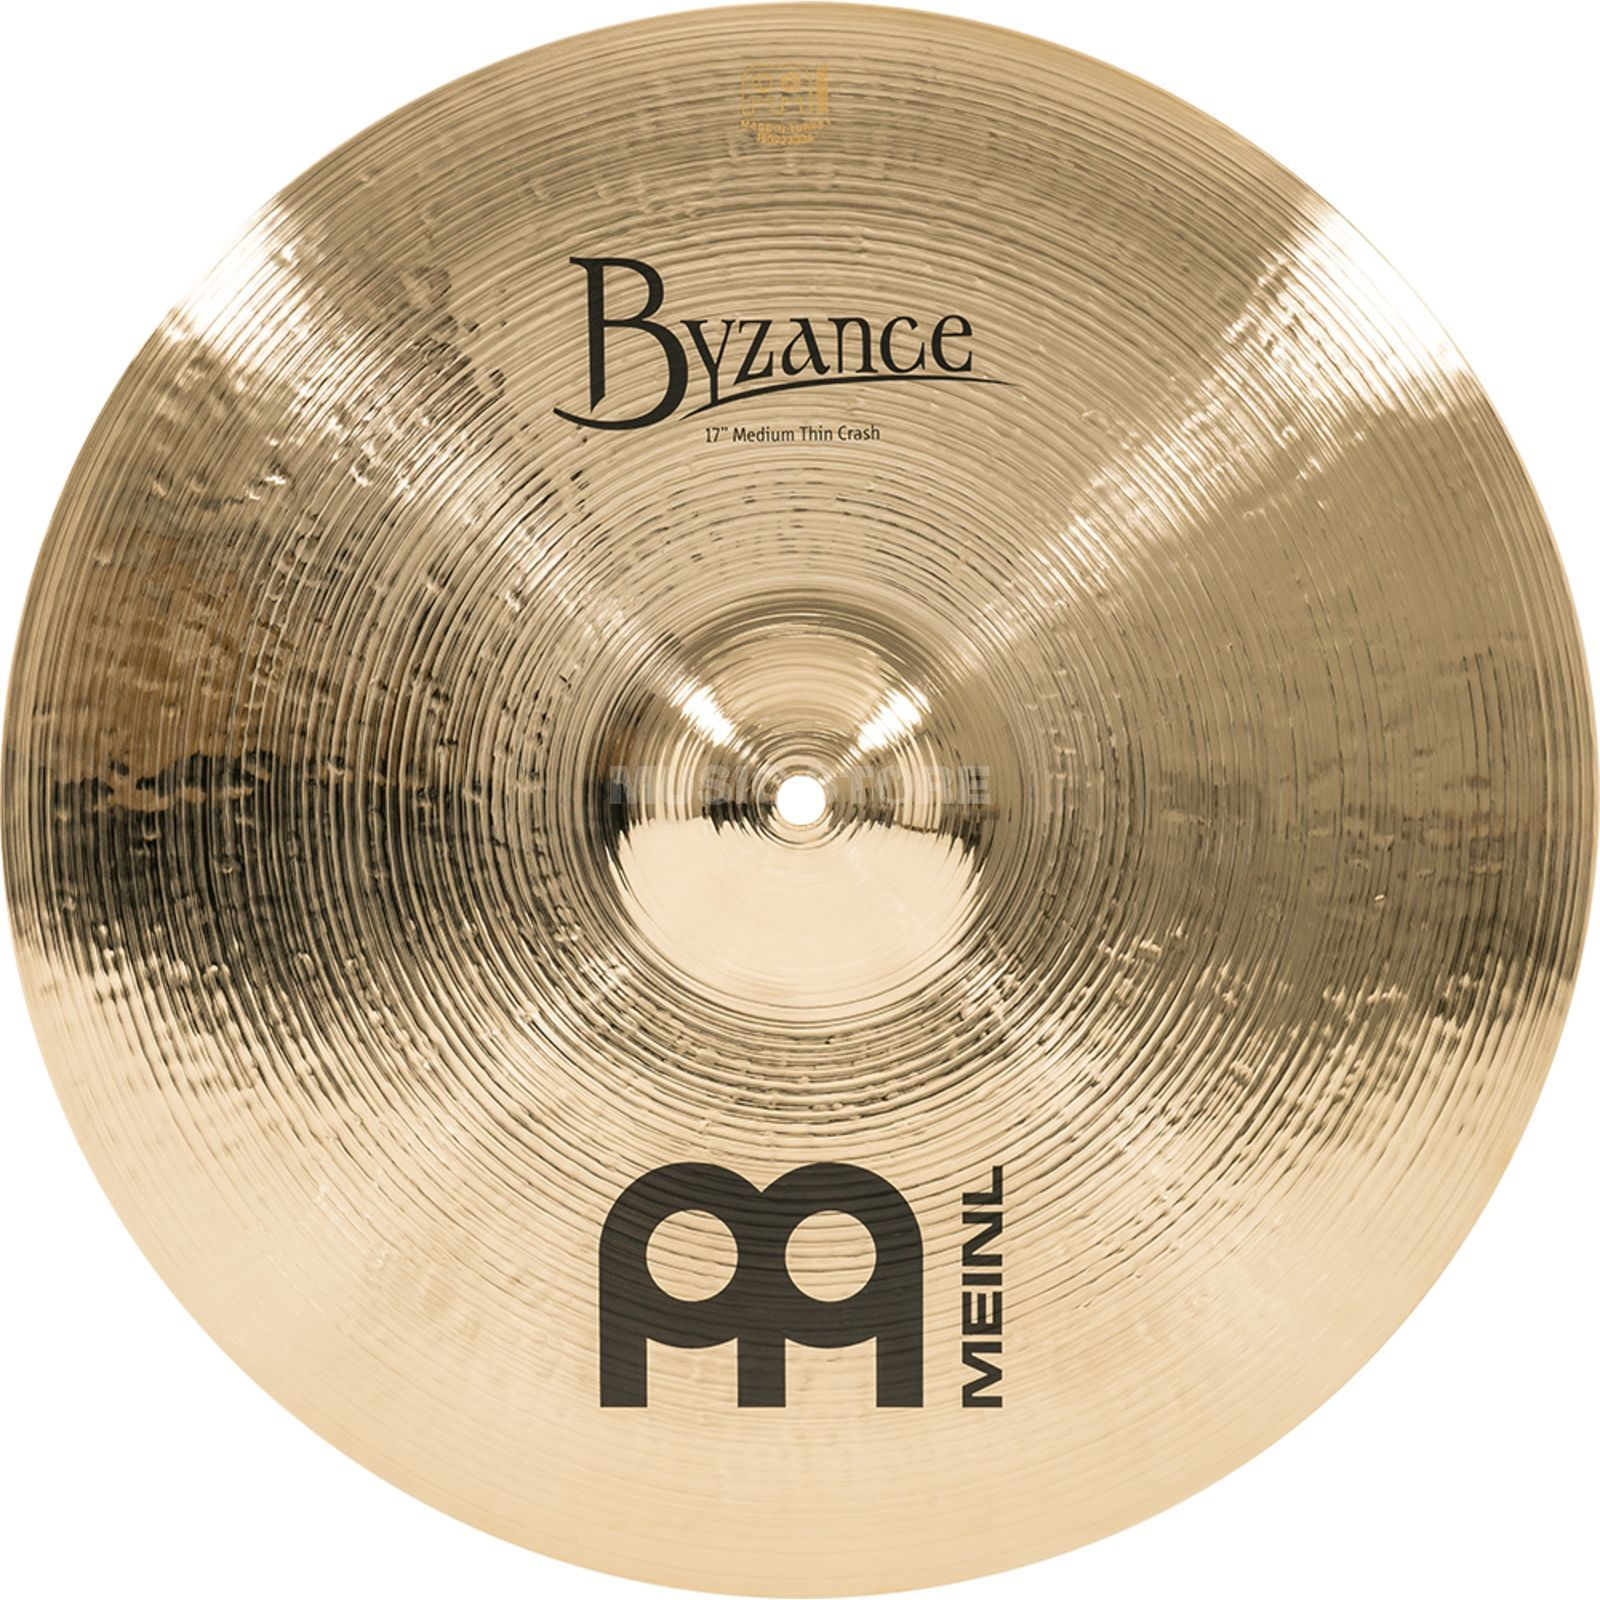 "Meinl Byzance Medium Thin Crash 17"" B17MTC-B, Brilliant Finish Produktbillede"